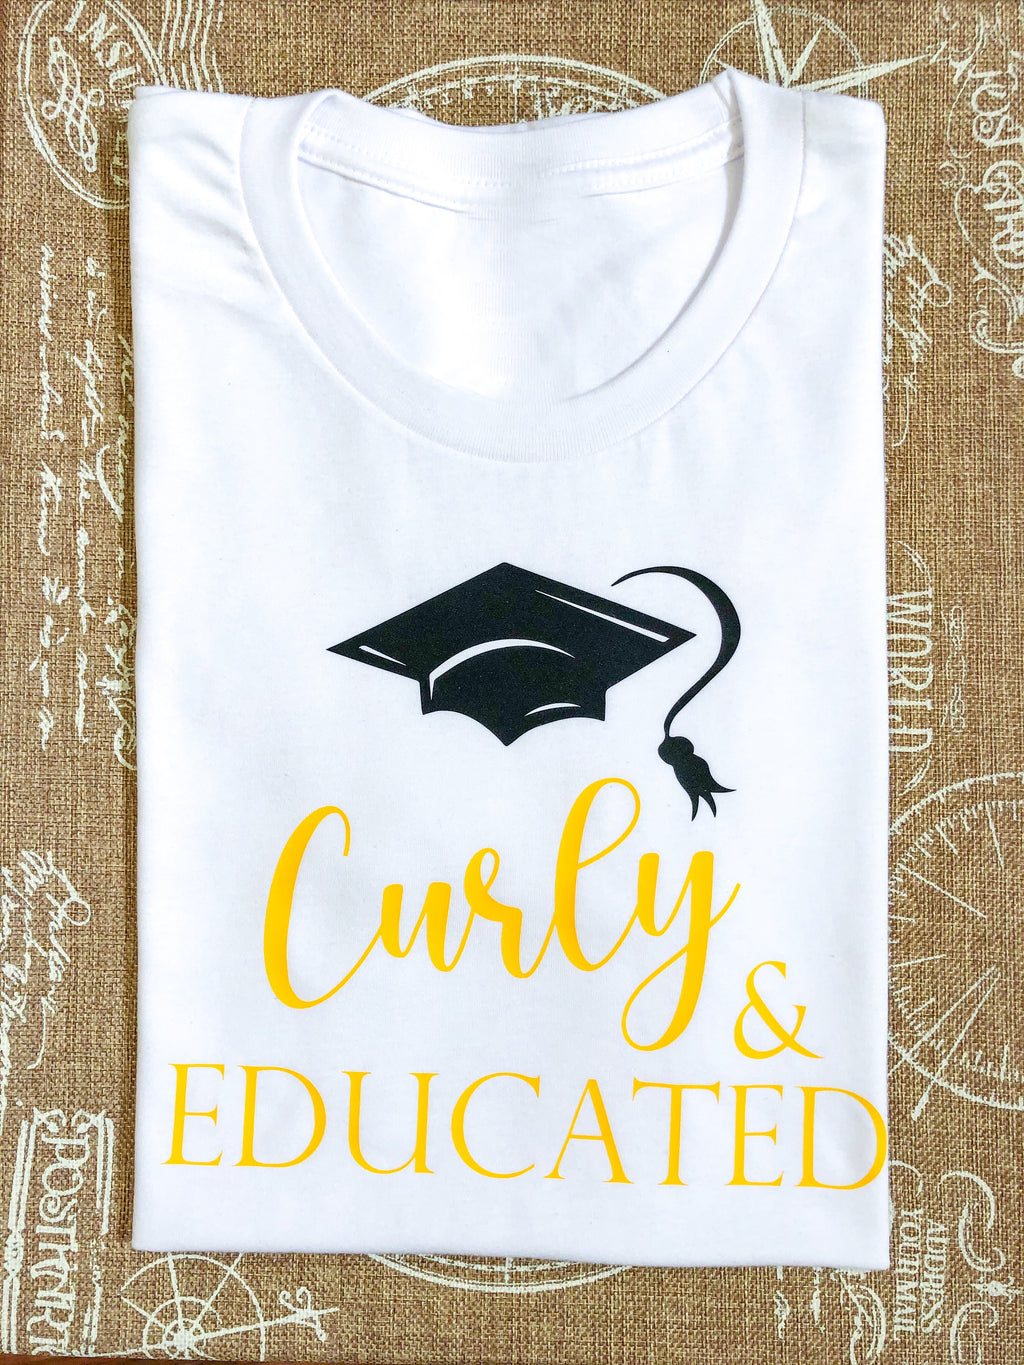 Curly & Educated T-shirt